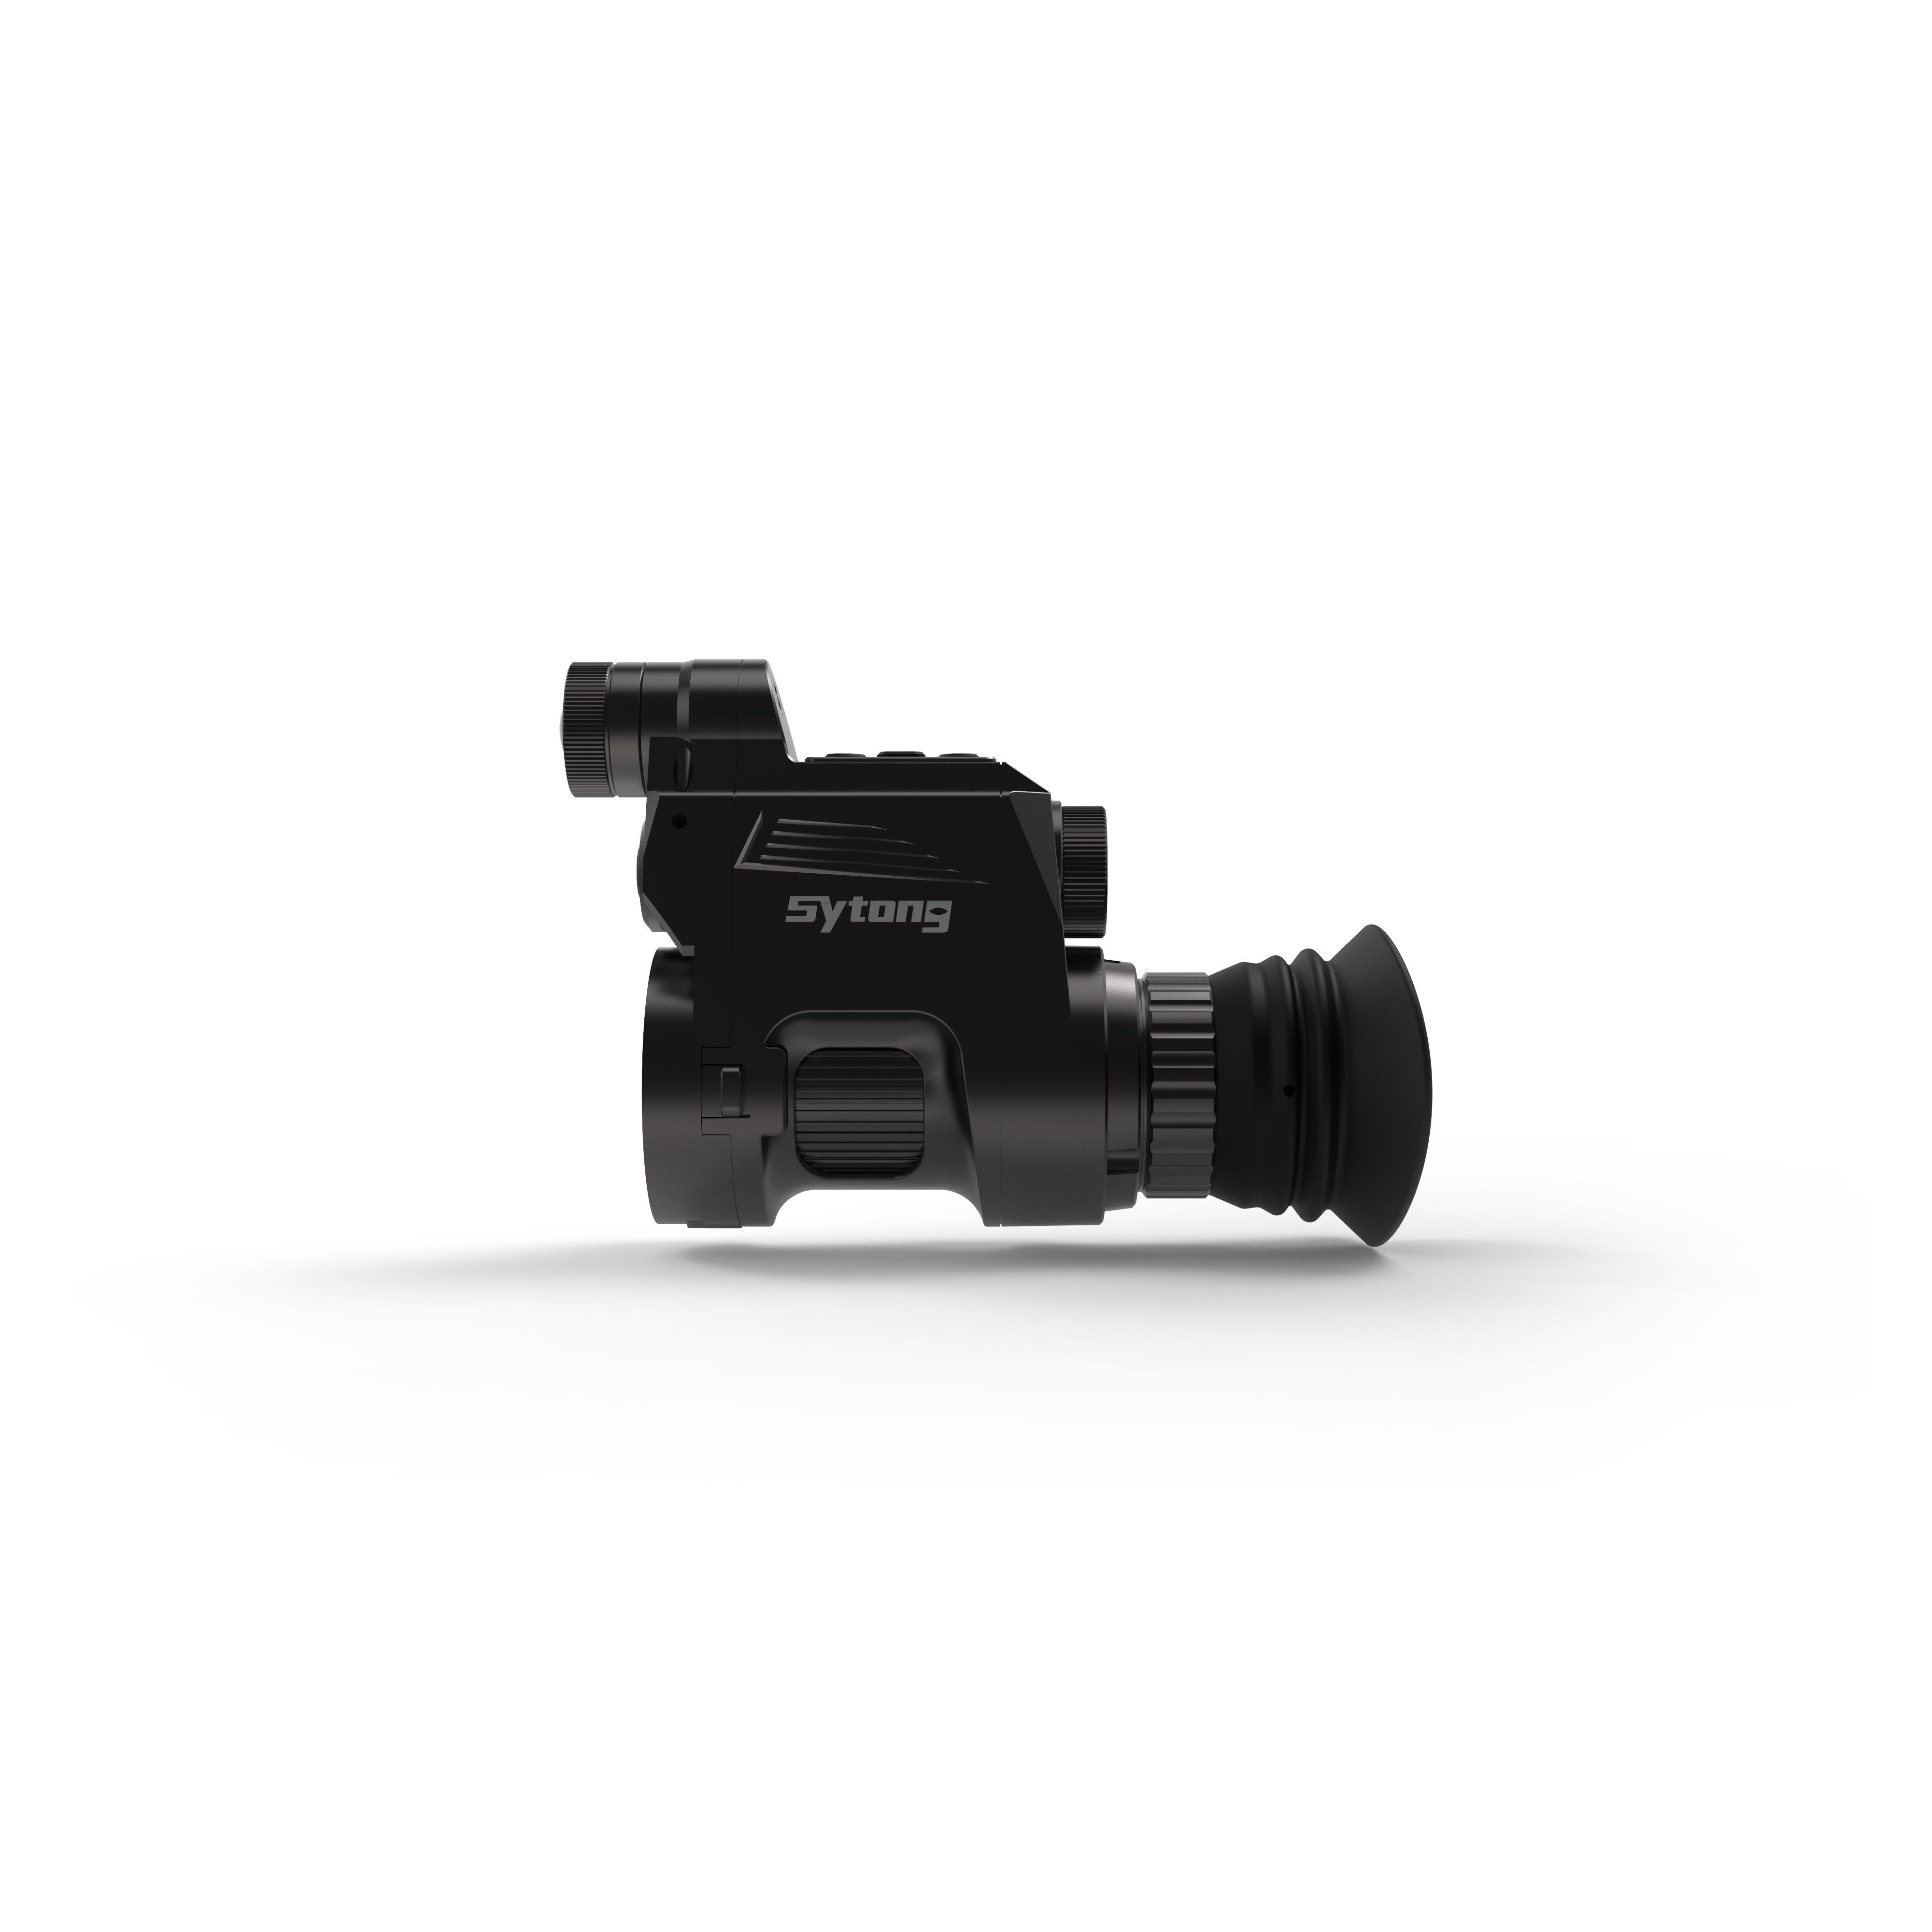 SYTONG Clip-on | Handheld Day & Night HT-66